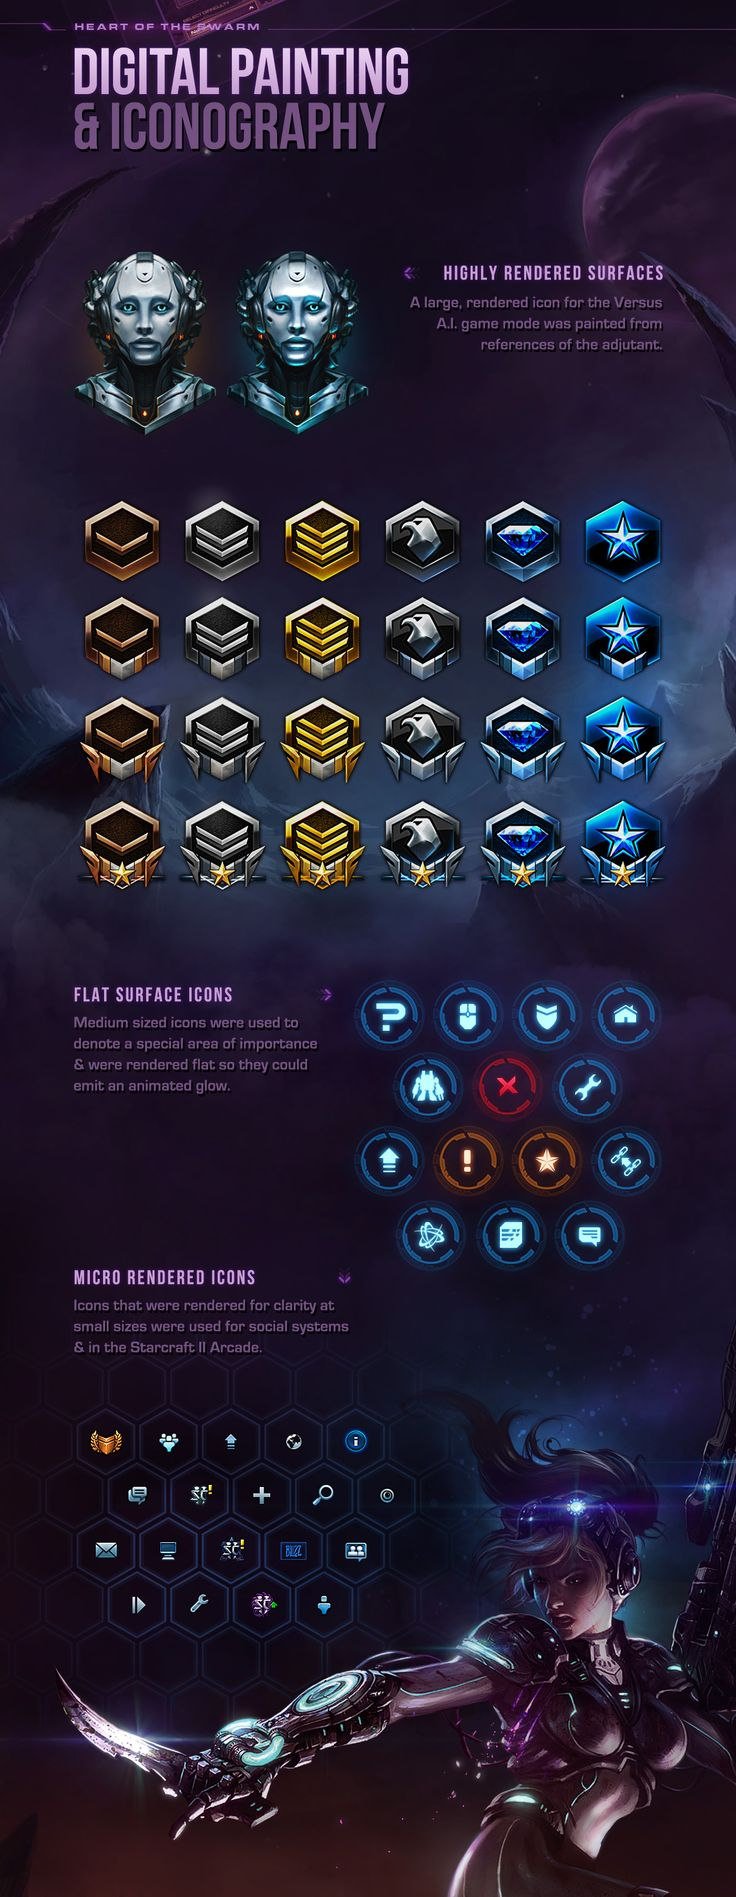 Heart of the Swarm: UI Design & Art on Behance